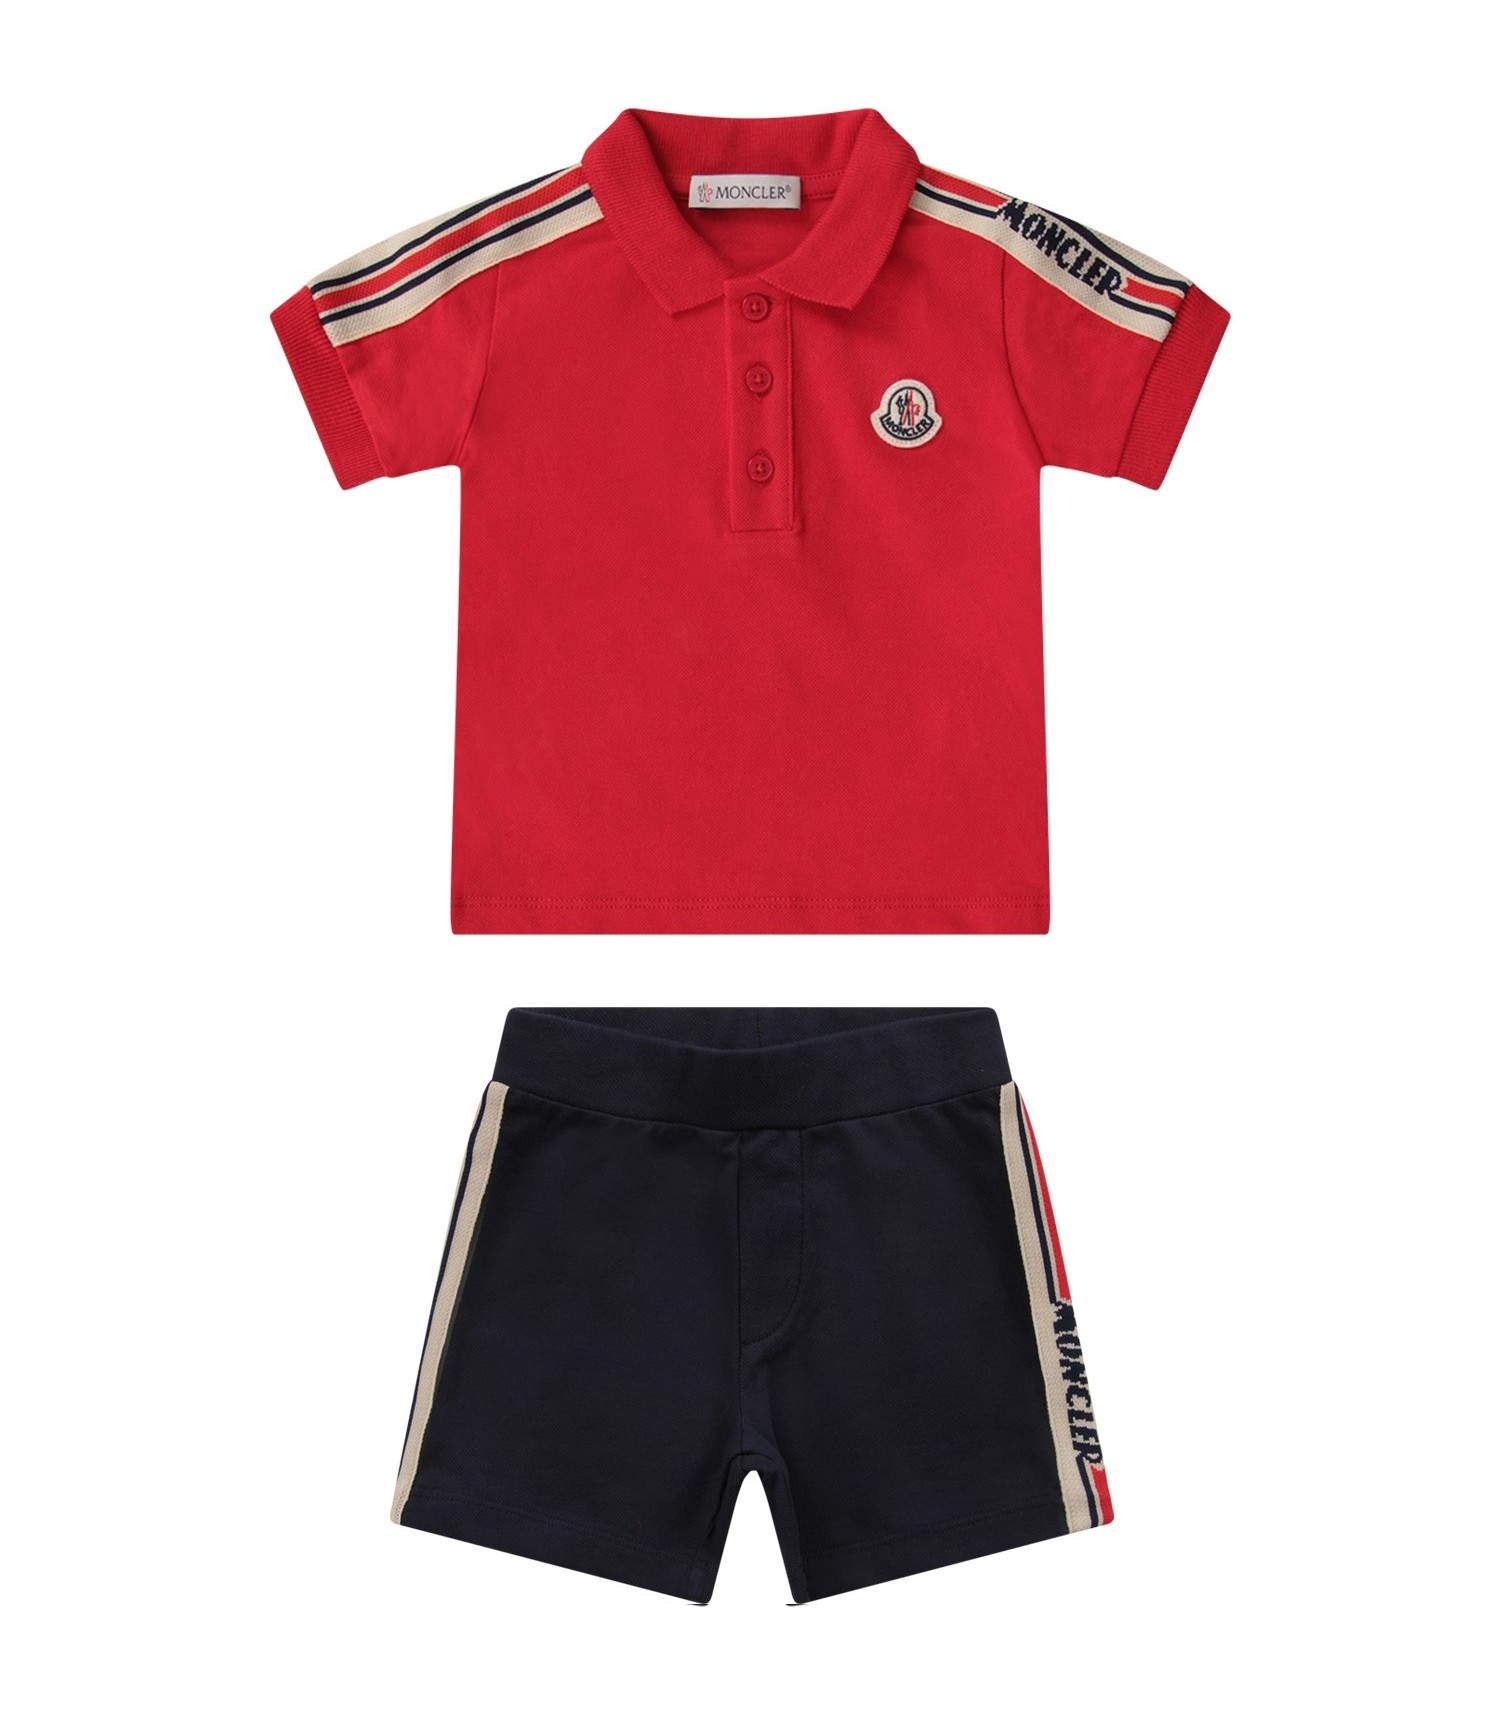 Moncler Kids Red and blue babyboy suit with logo